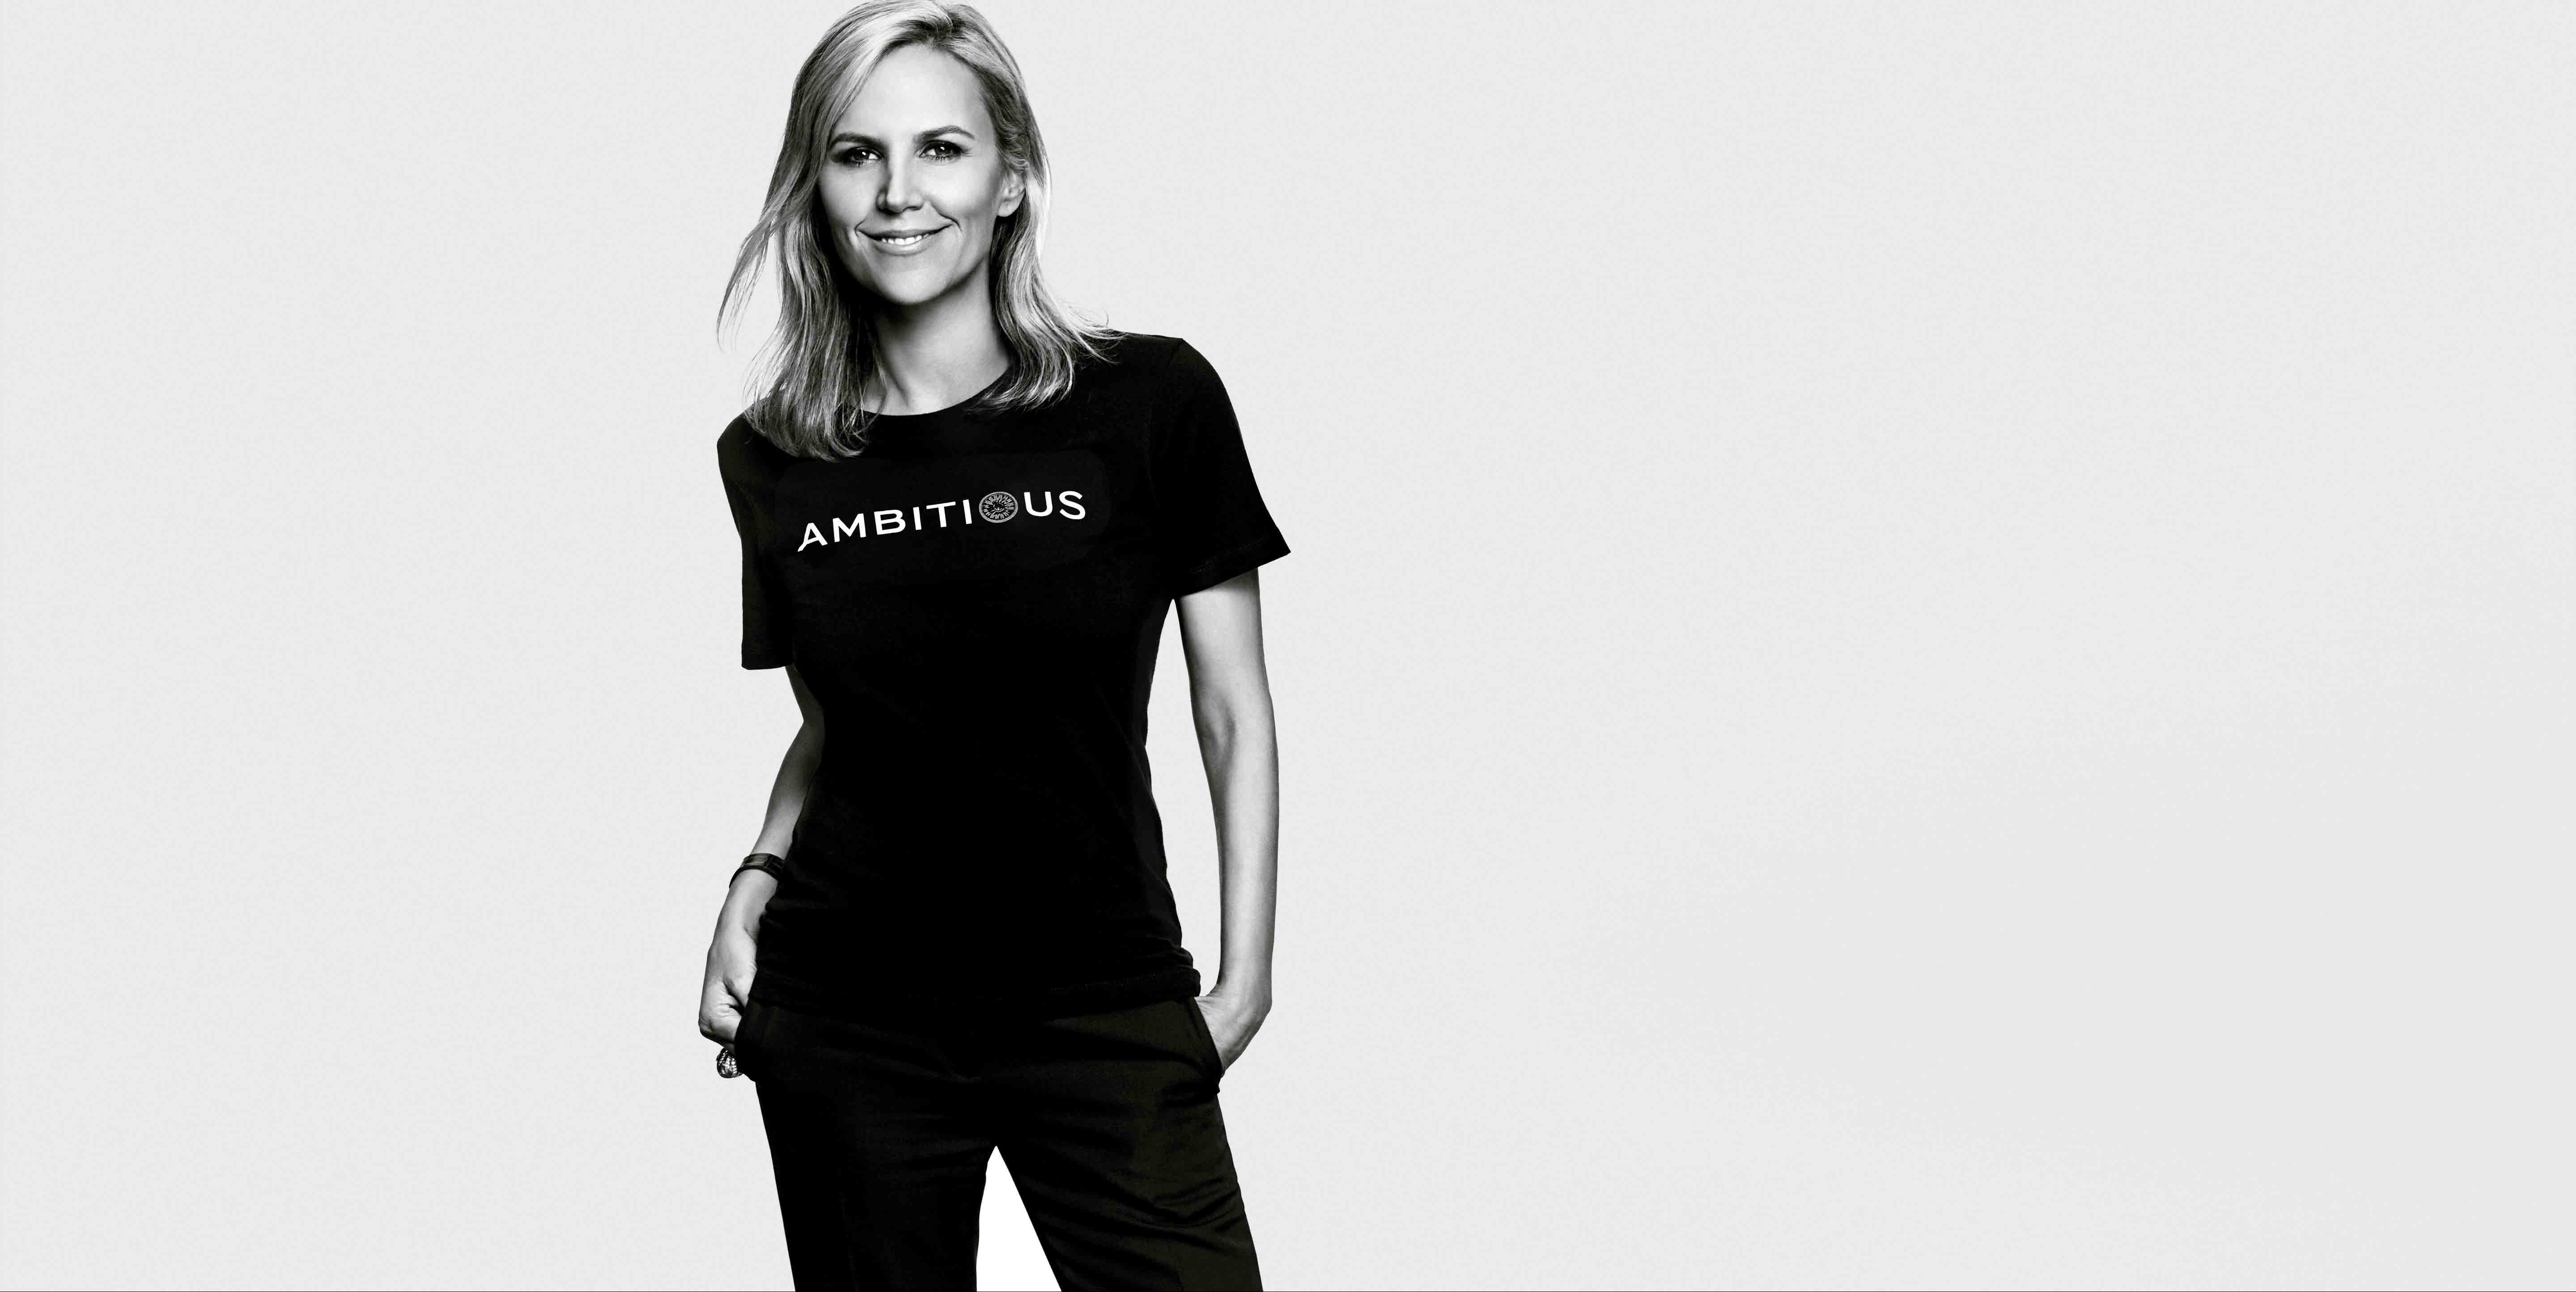 The fashion designer is hosting the Tory Burch Foundation's #EmbraceAmbition series in NYC.